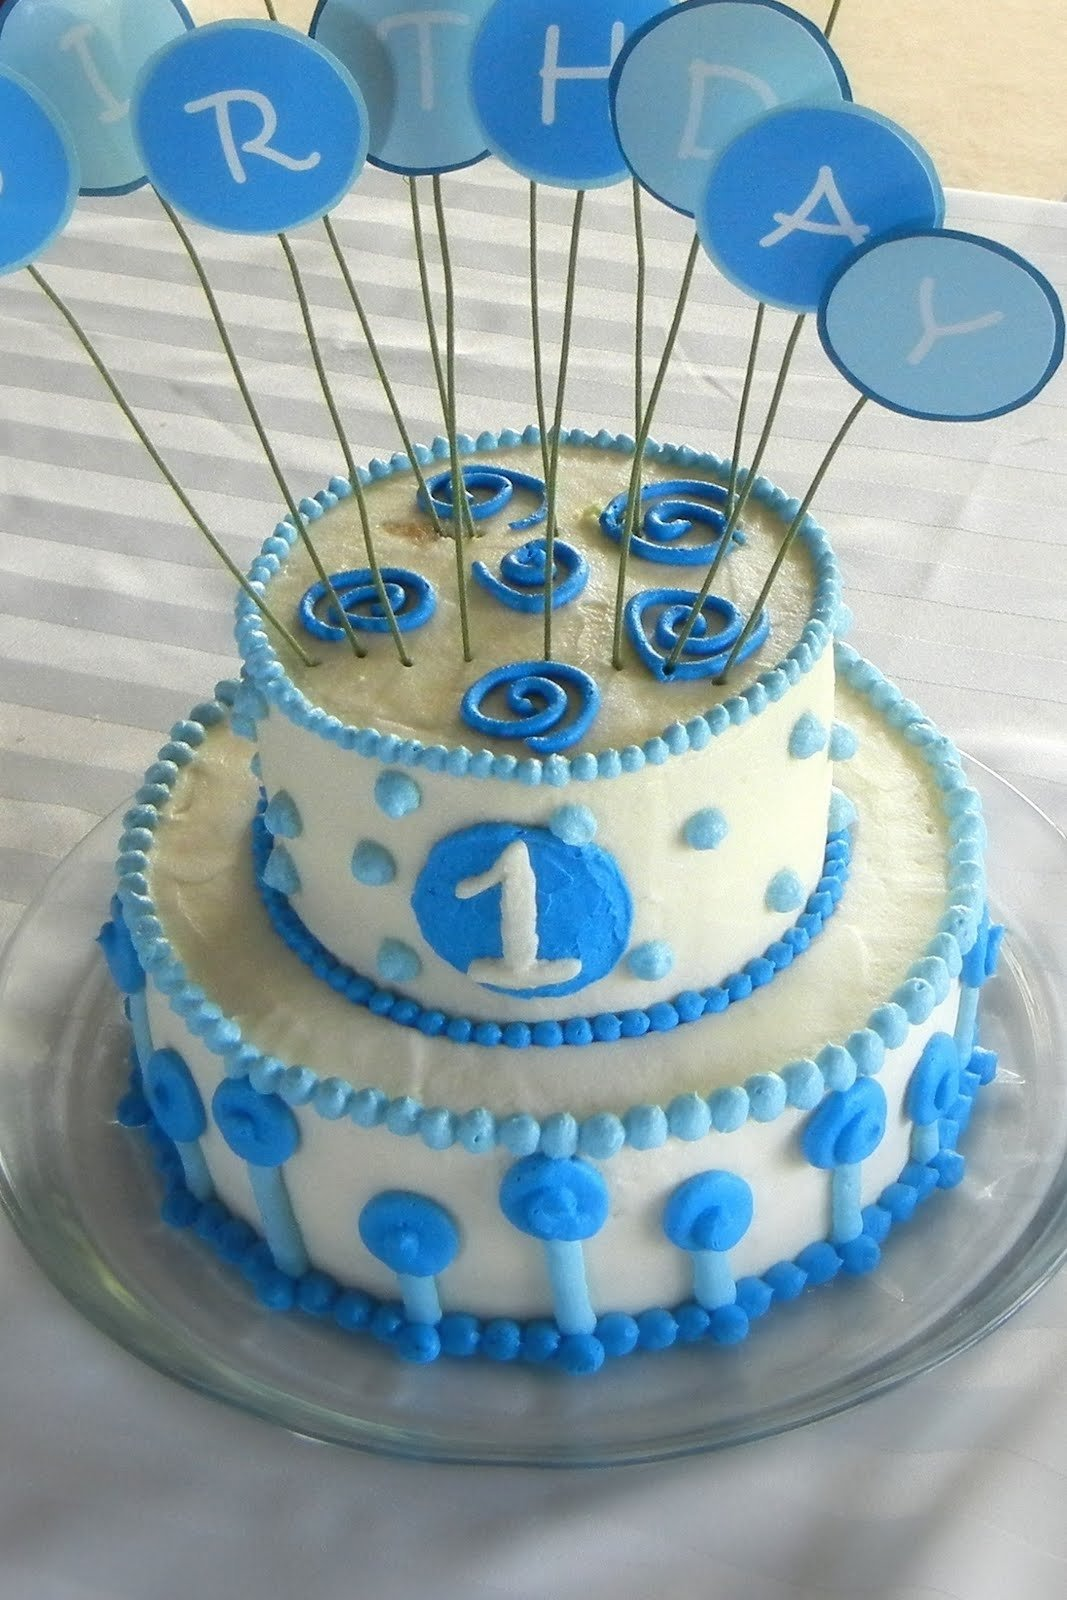 10 Cute Baby Boy First Birthday Cake Ideas Party Cakes 1st